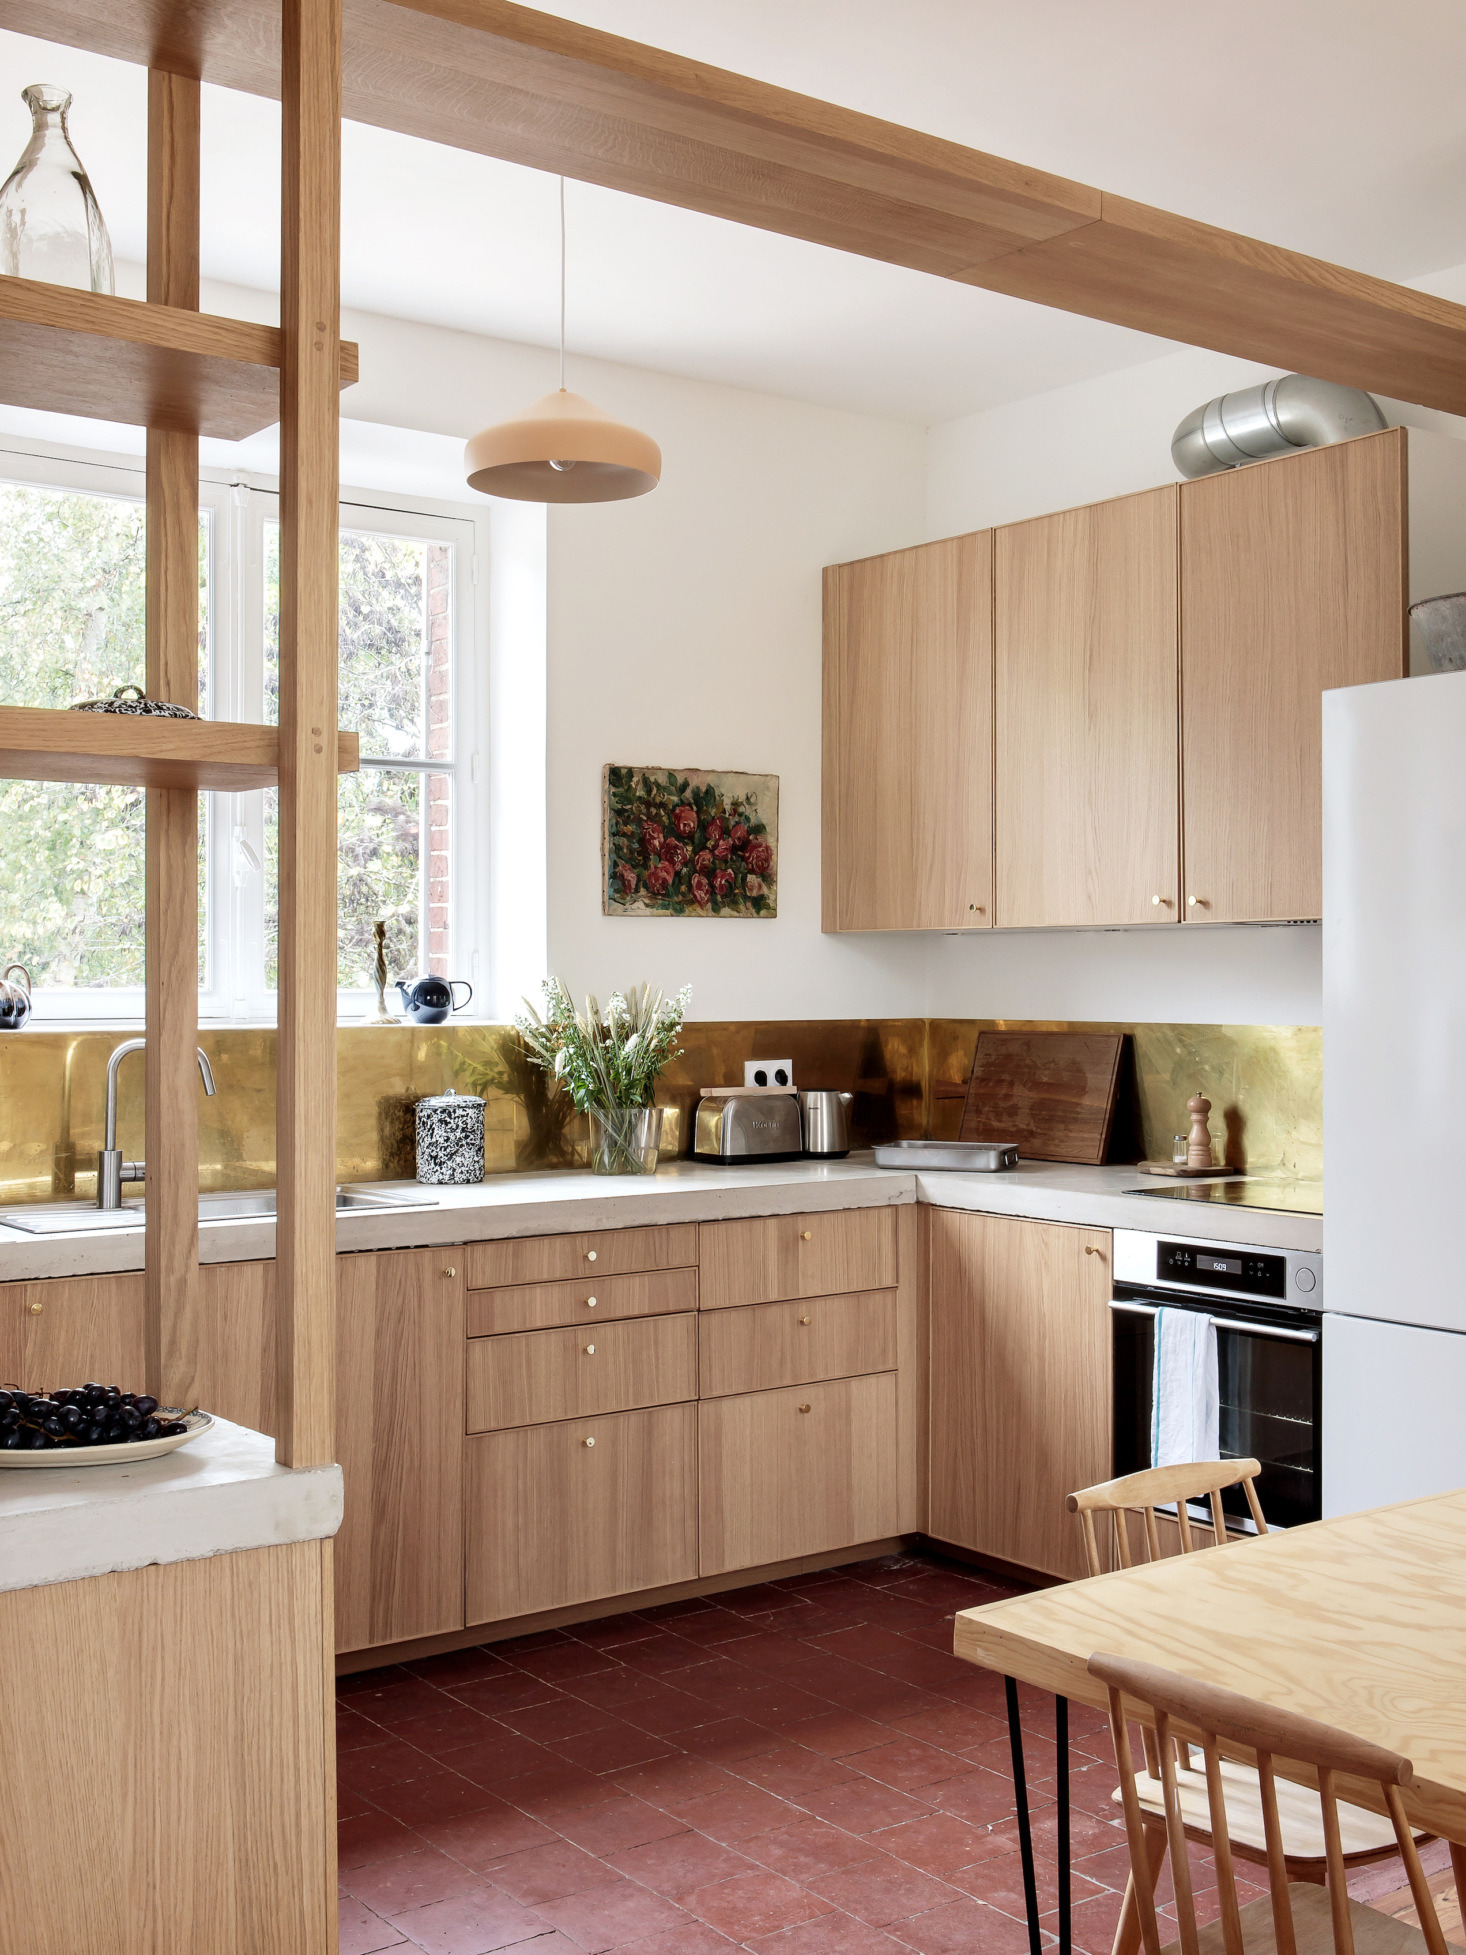 Custom Kitchen Cabinet Doors Lovely In Praise Of Ikea 20 Ikea Kitchens From the Remodelista